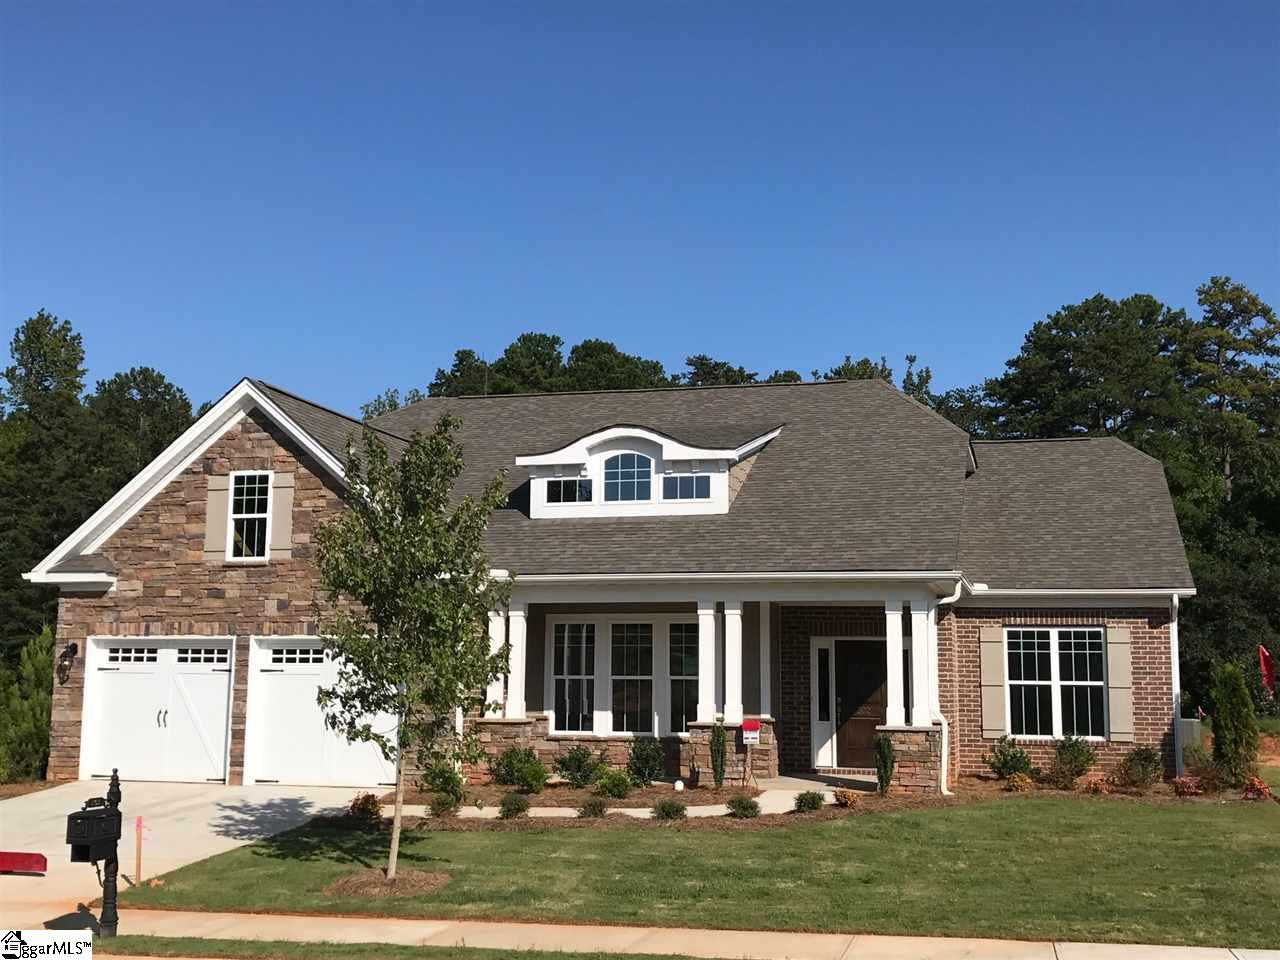 302 Cannock Place, Greenville, SC 29615